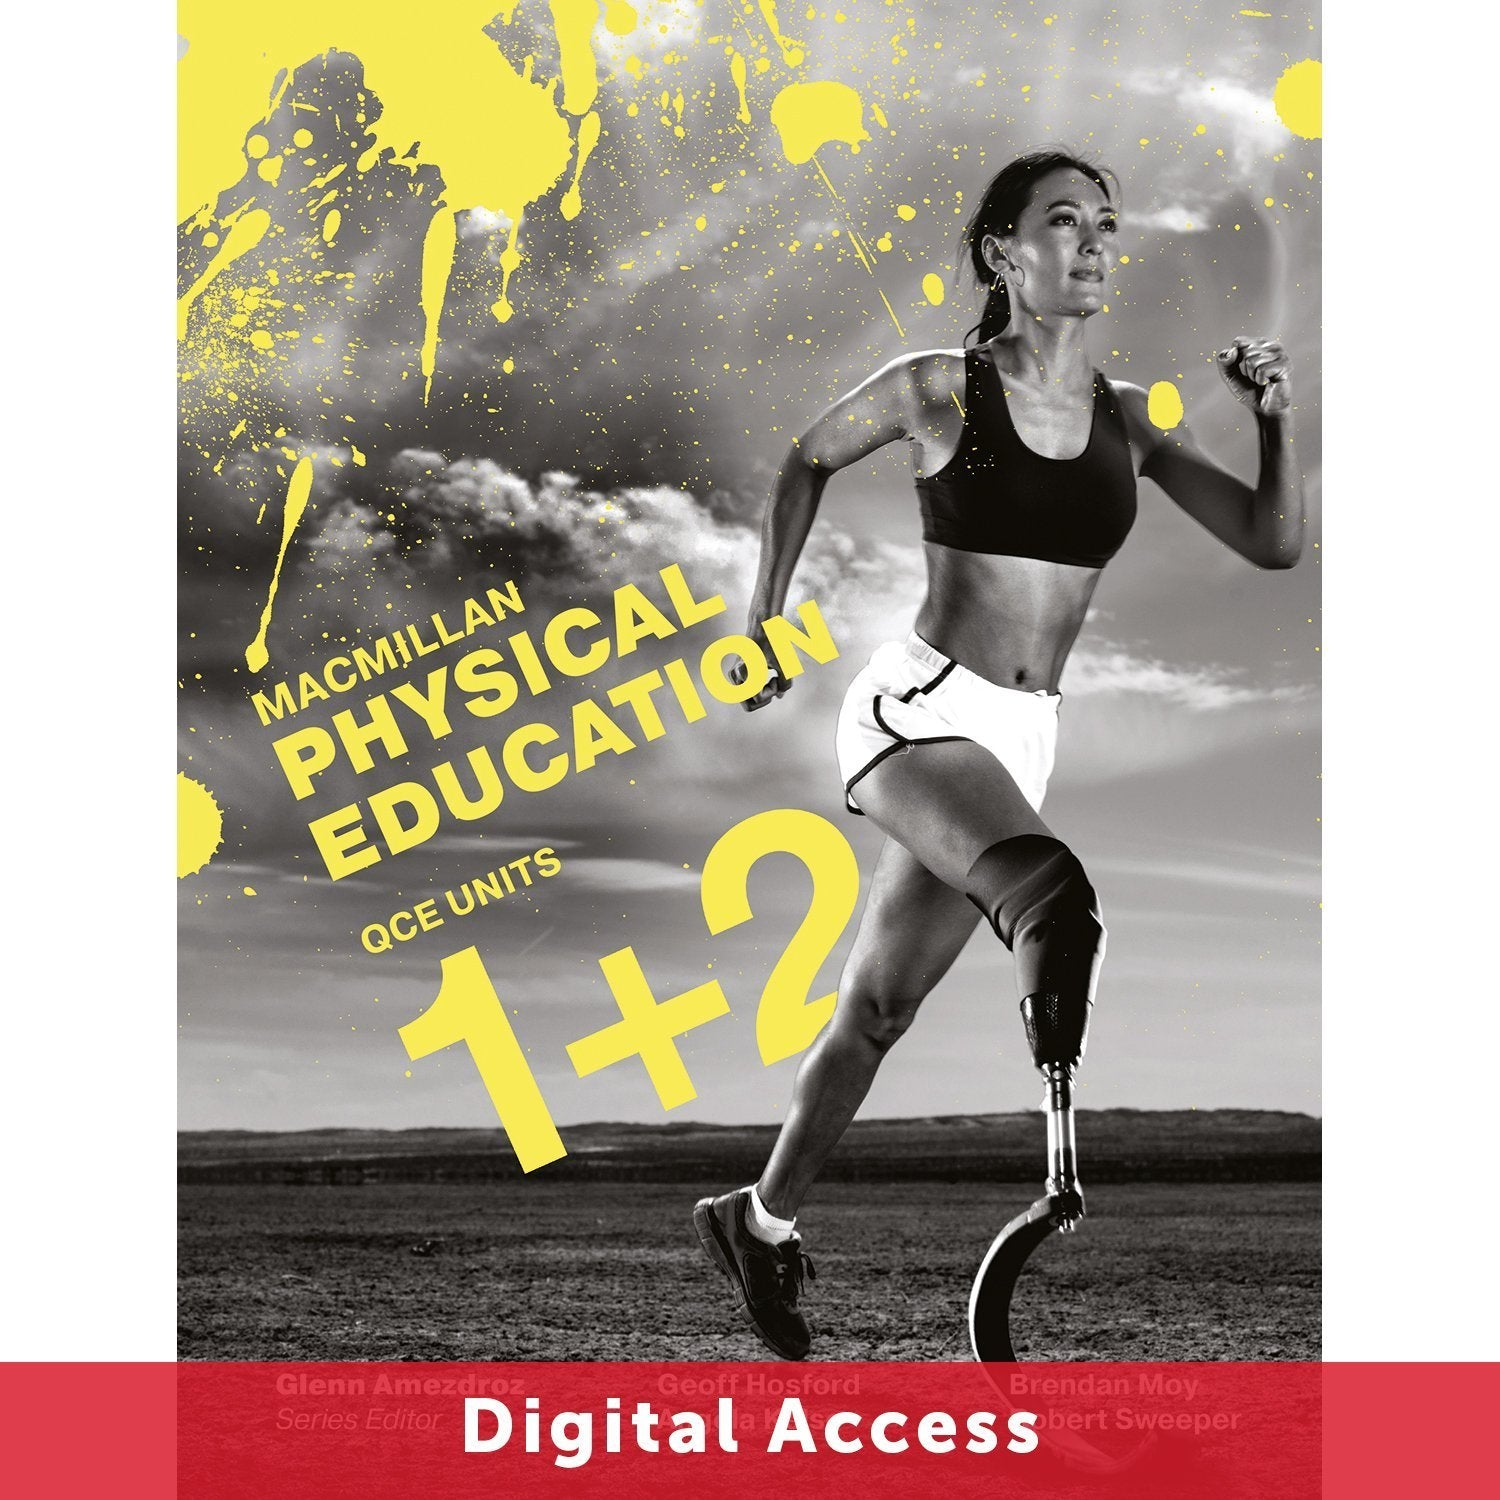 Macmillan Physical Education QCE Units 1&2 Teacher Digital Access